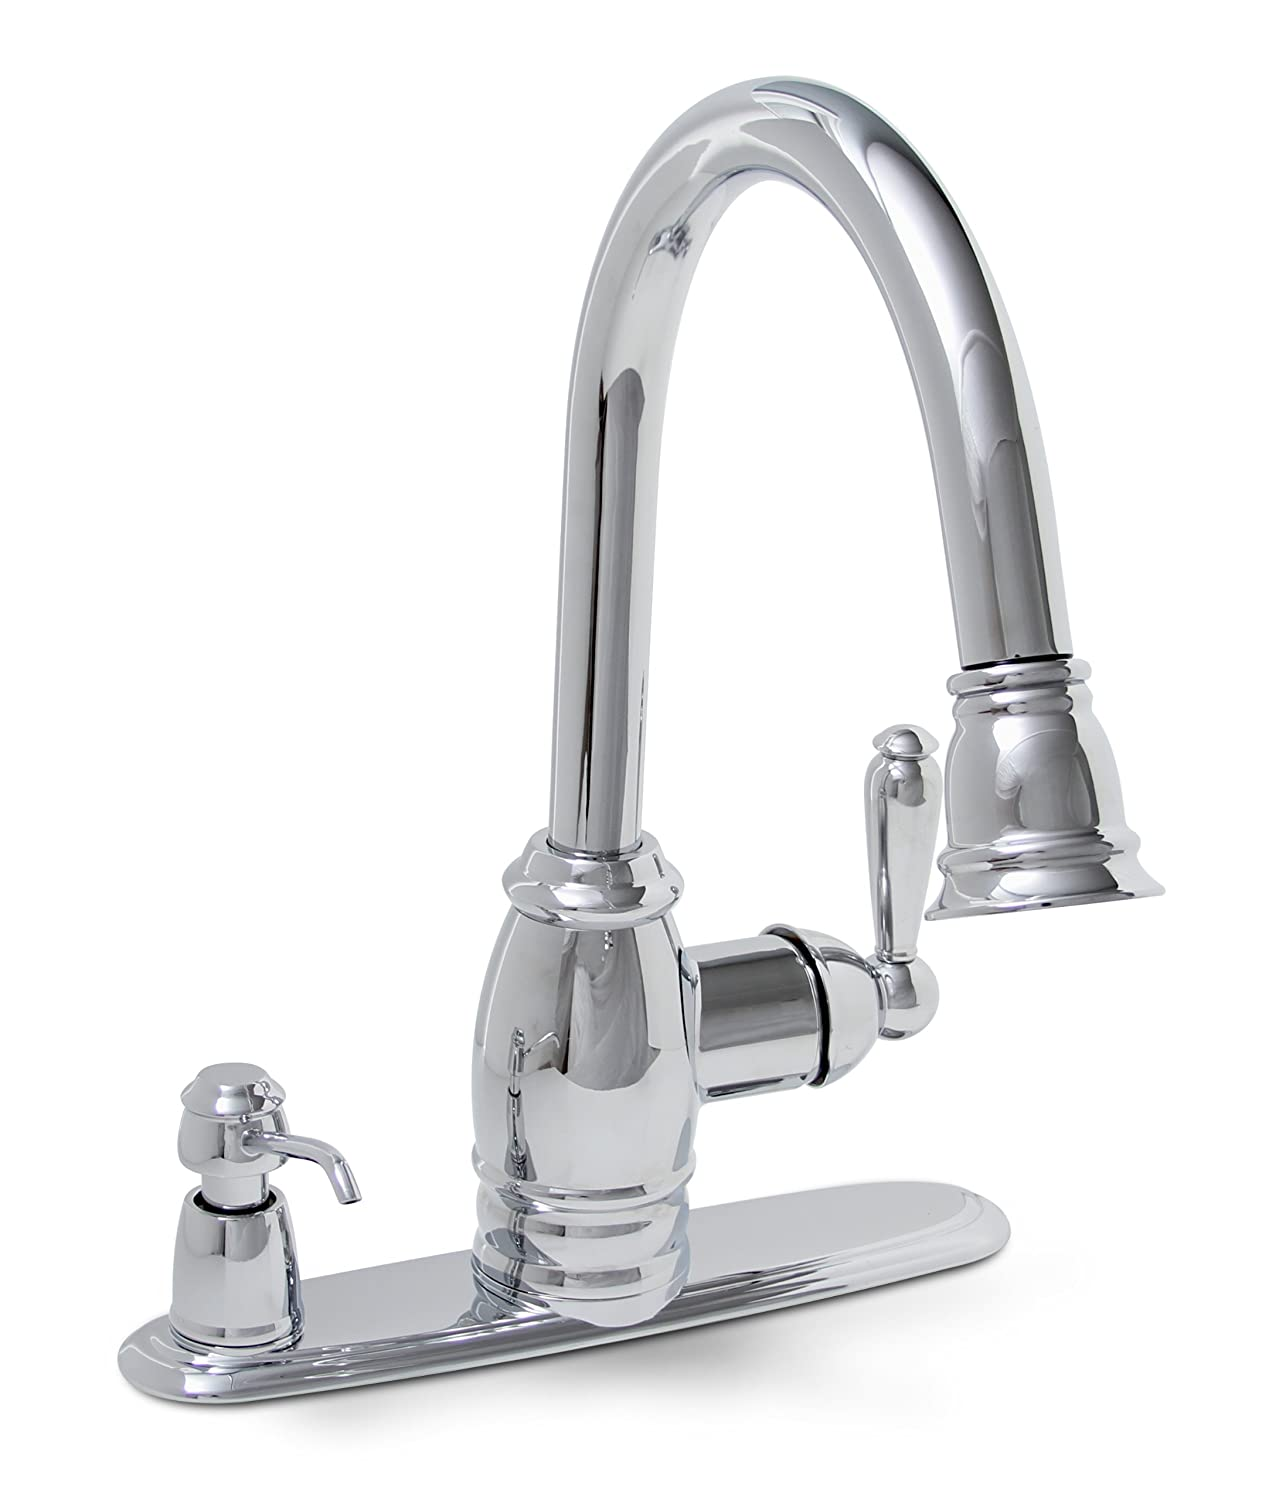 Premier 120110LF Sonoma Lead Free Pull Down Kitchen Faucet With Matching  Soap Dispenser, Chrome   Touch On Kitchen Sink Faucets   Amazon.com